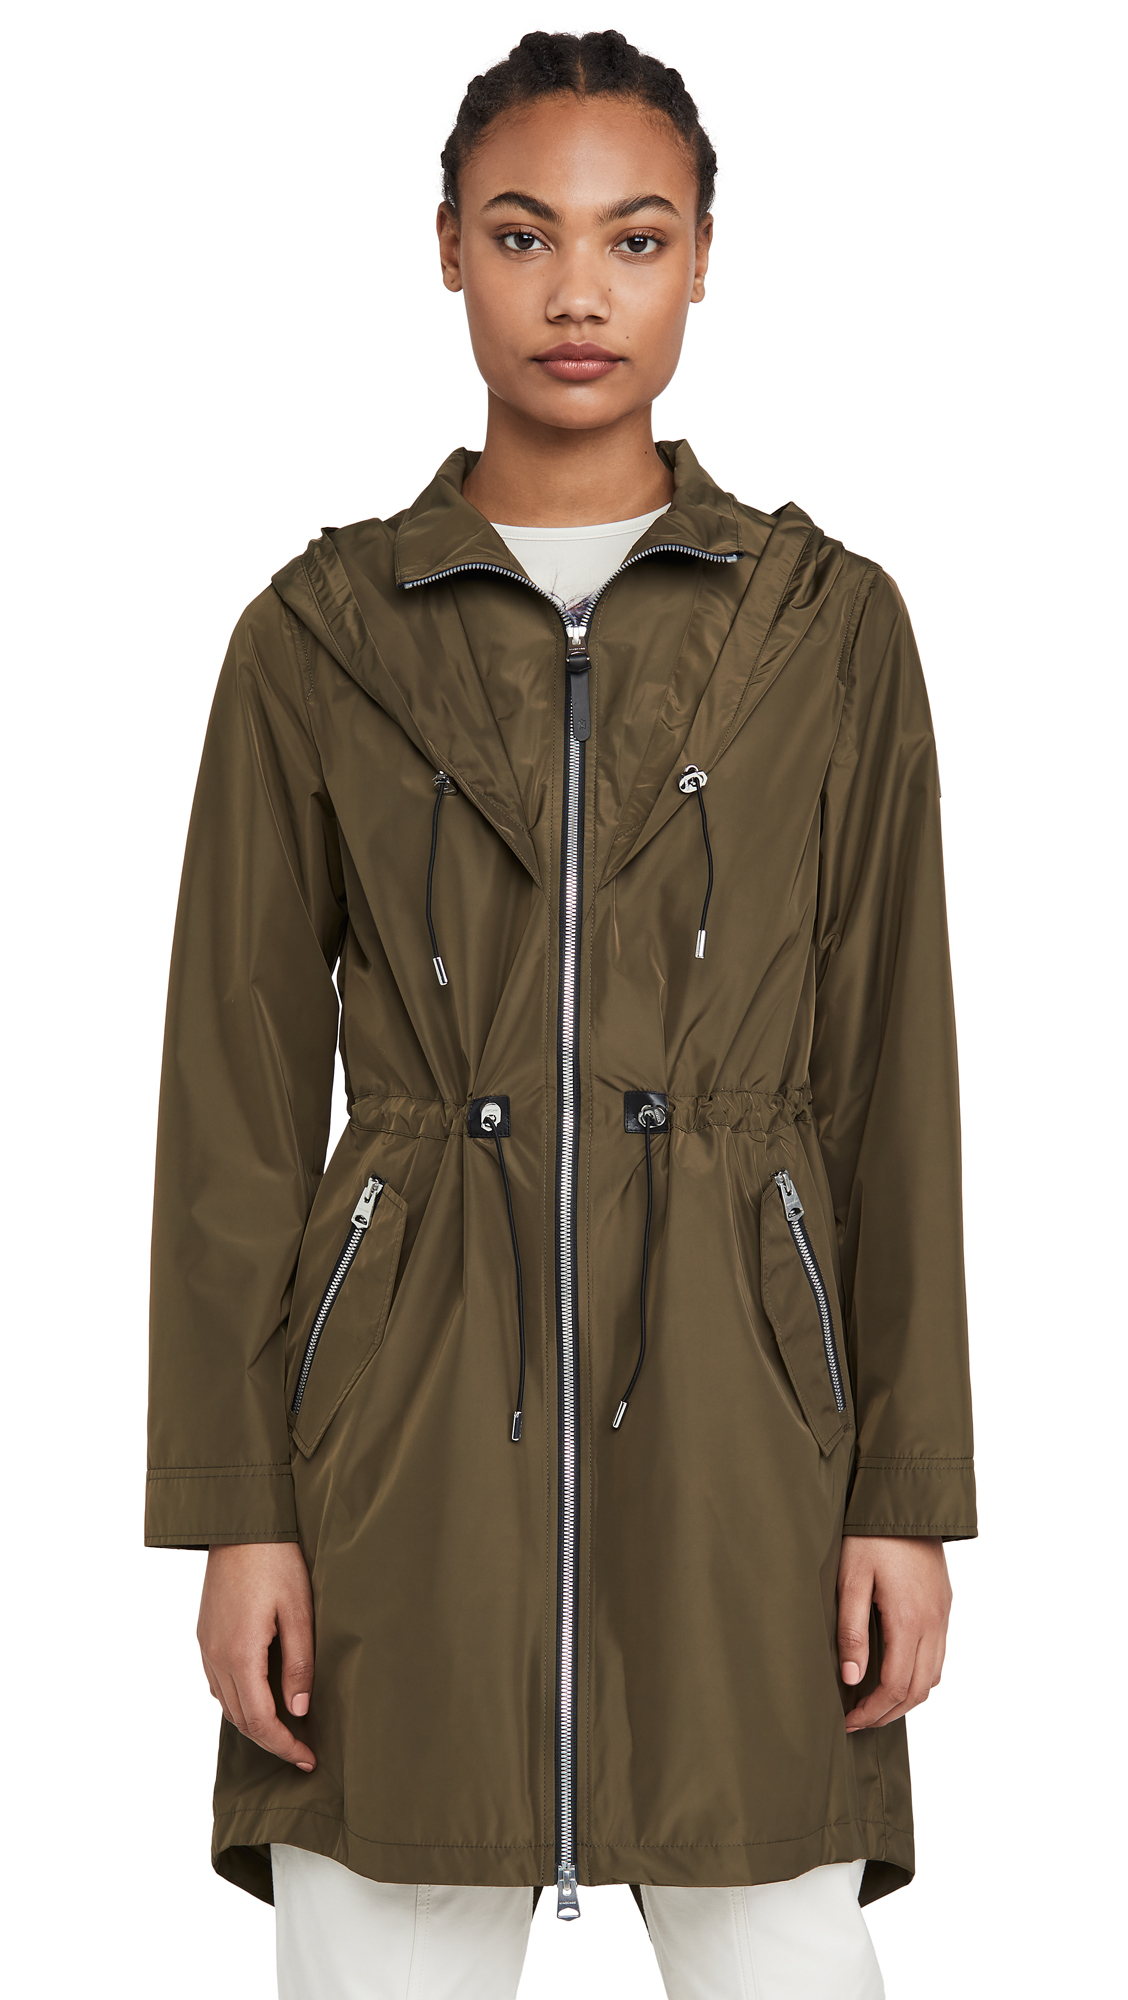 Buy Mackage Franki Jacket online beautiful Mackage Jackets, Coats, Trench Coats